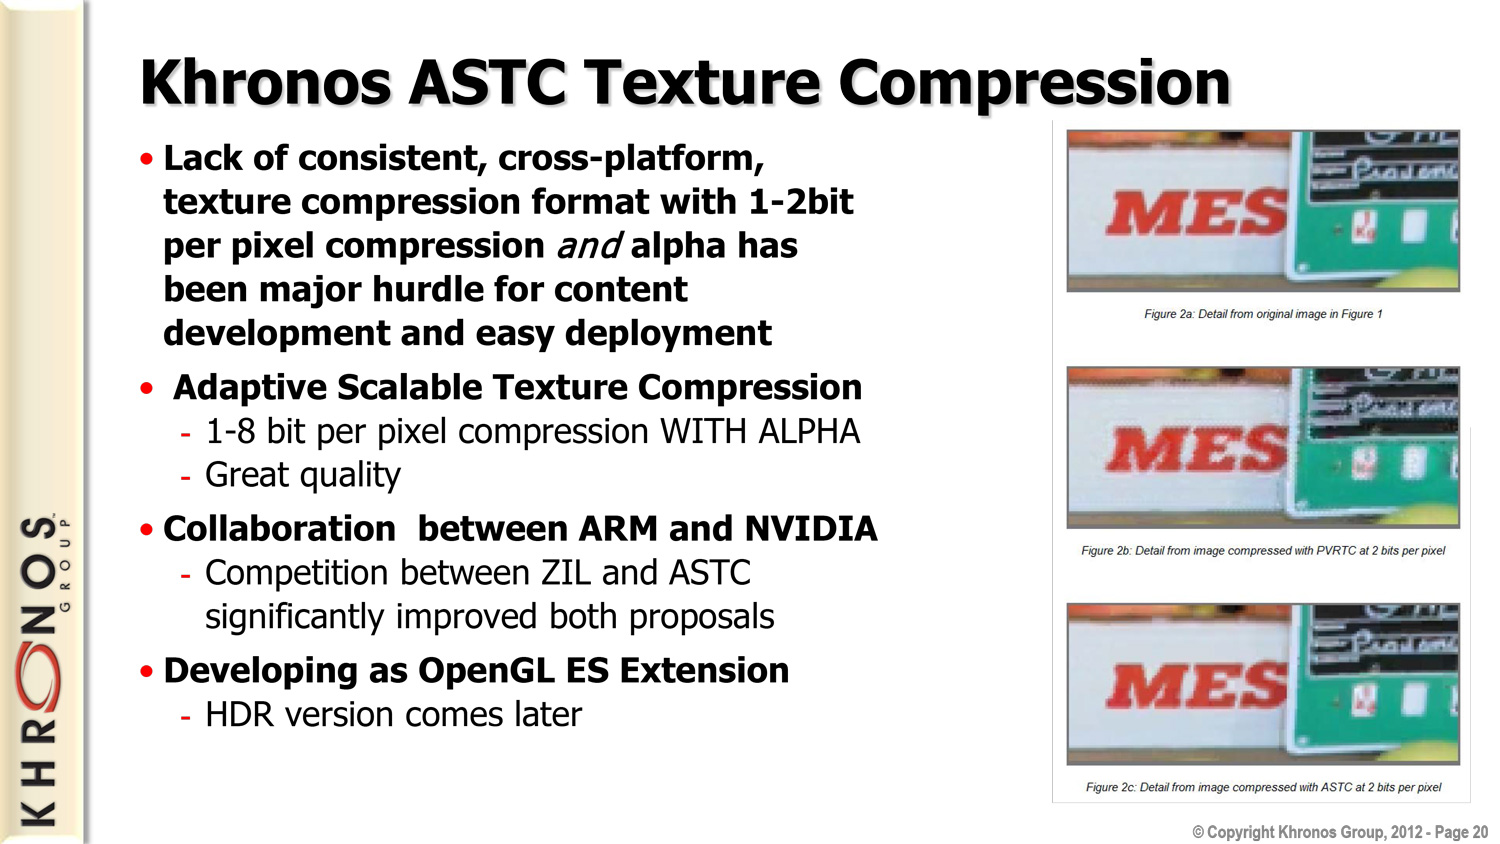 Adaptive Scalable Texture Compression - Khronos Announces OpenGL ES